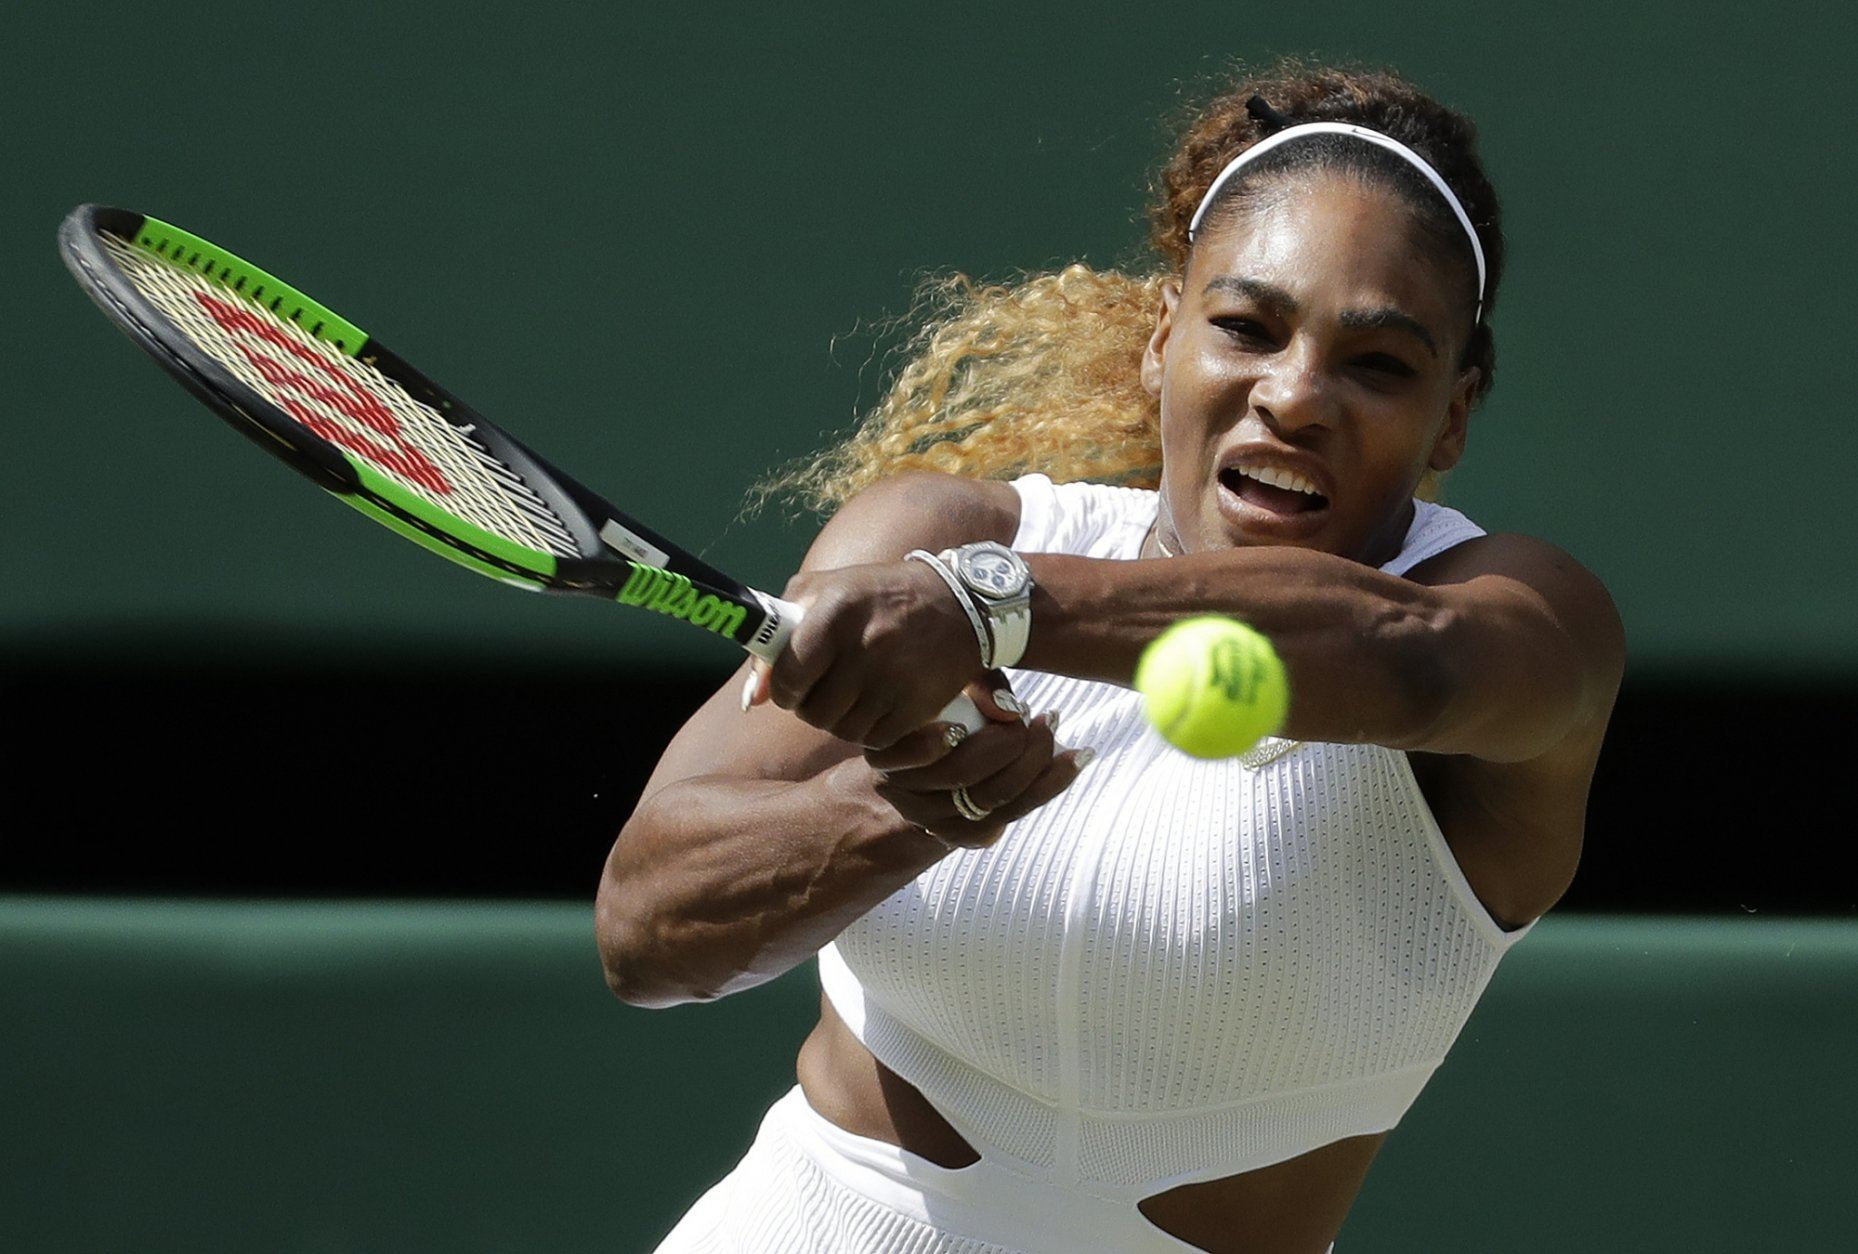 United States' Serena Williams returns to Czech Republic's Barbora Strycova in a Women's semifinal singles match on day ten of the Wimbledon Tennis Championships in London, Thursday, July 11, 2019.